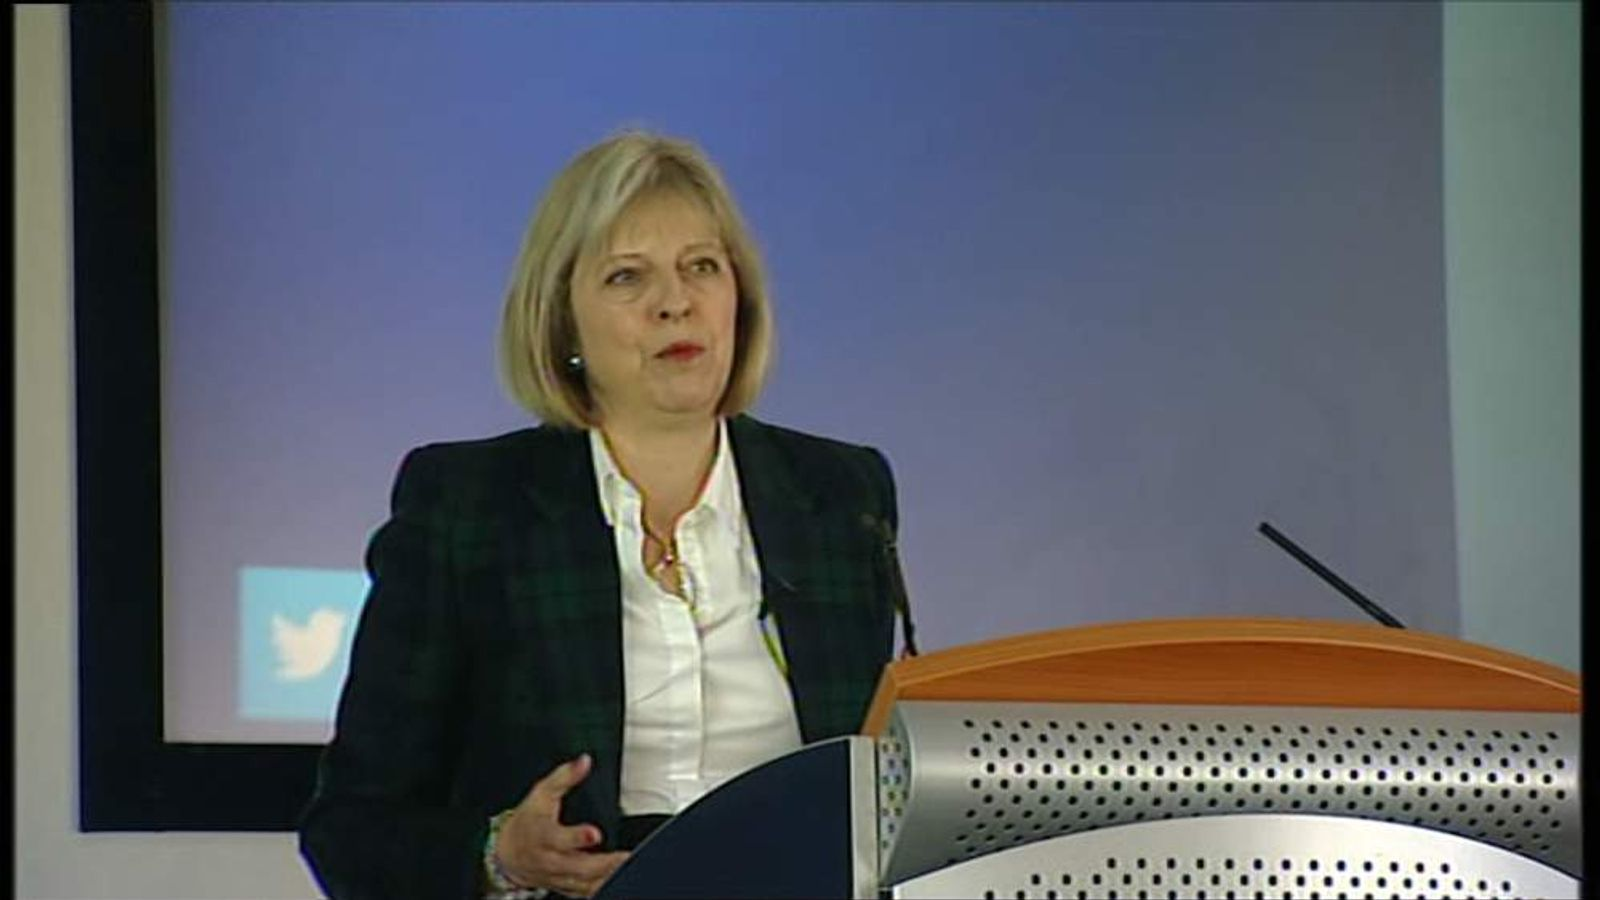 Home Secretary Theresa May addressing police conference